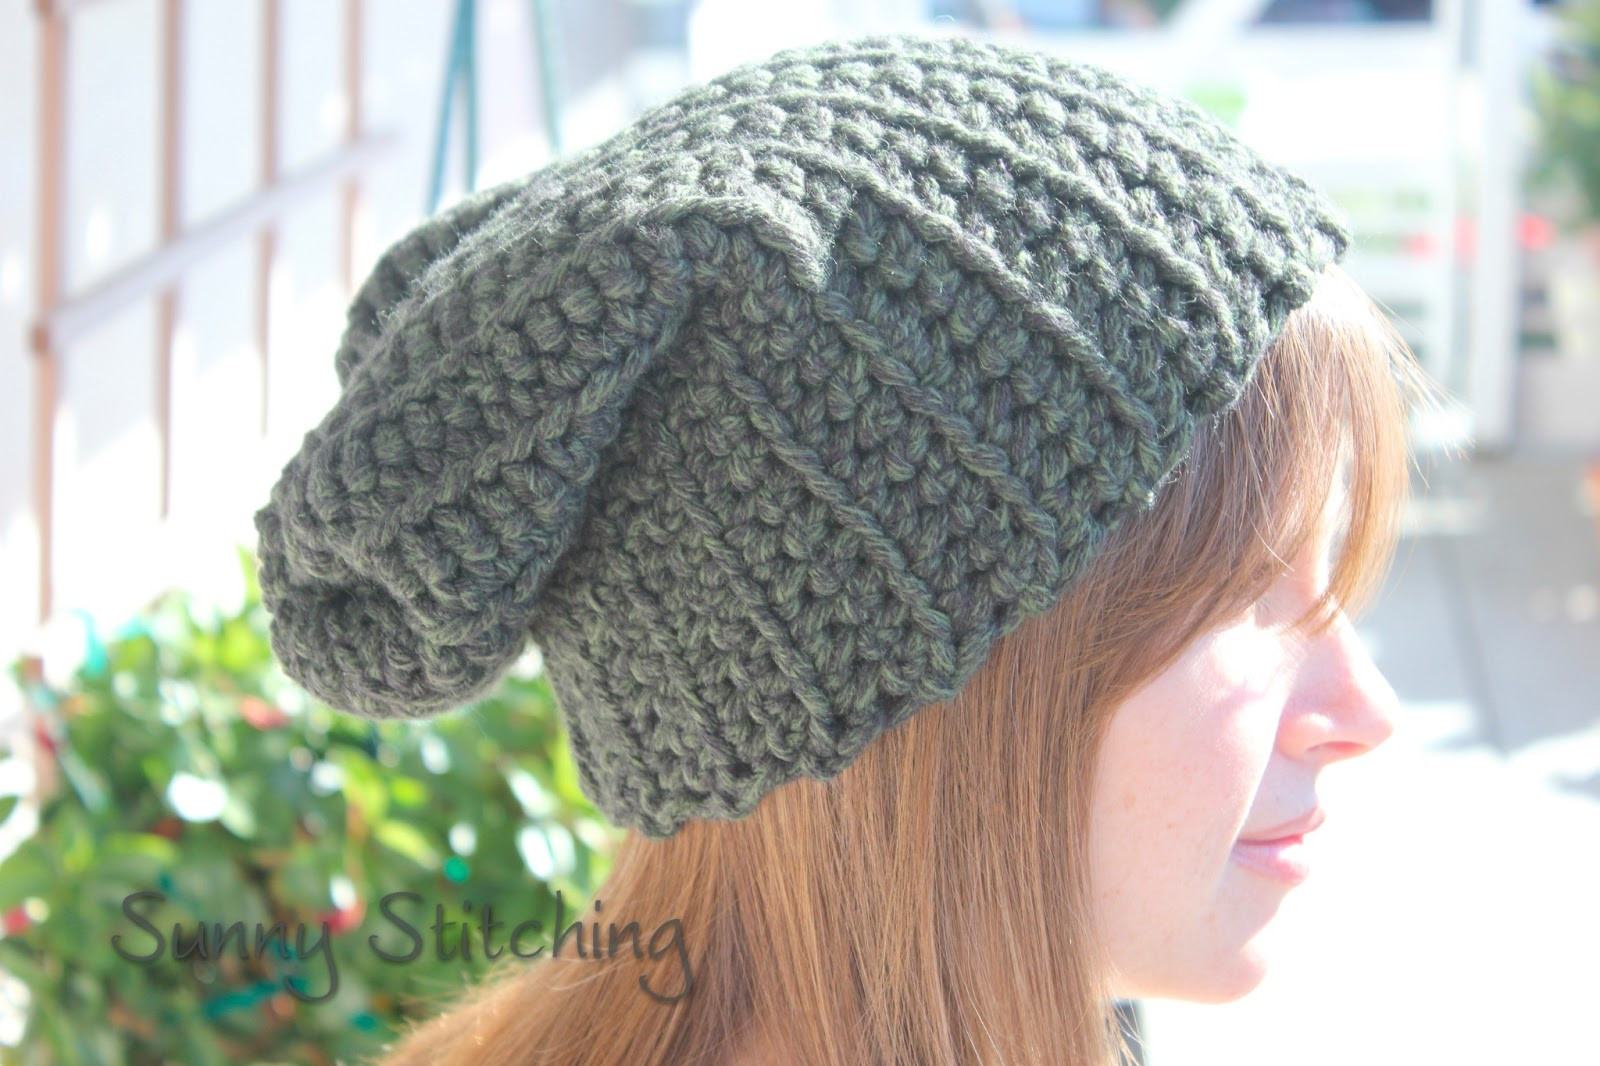 Unique Sunny Stitching Slouchy Hat Crochet Pattern Free Hat Patterns Of Amazing 43 Models Free Hat Patterns